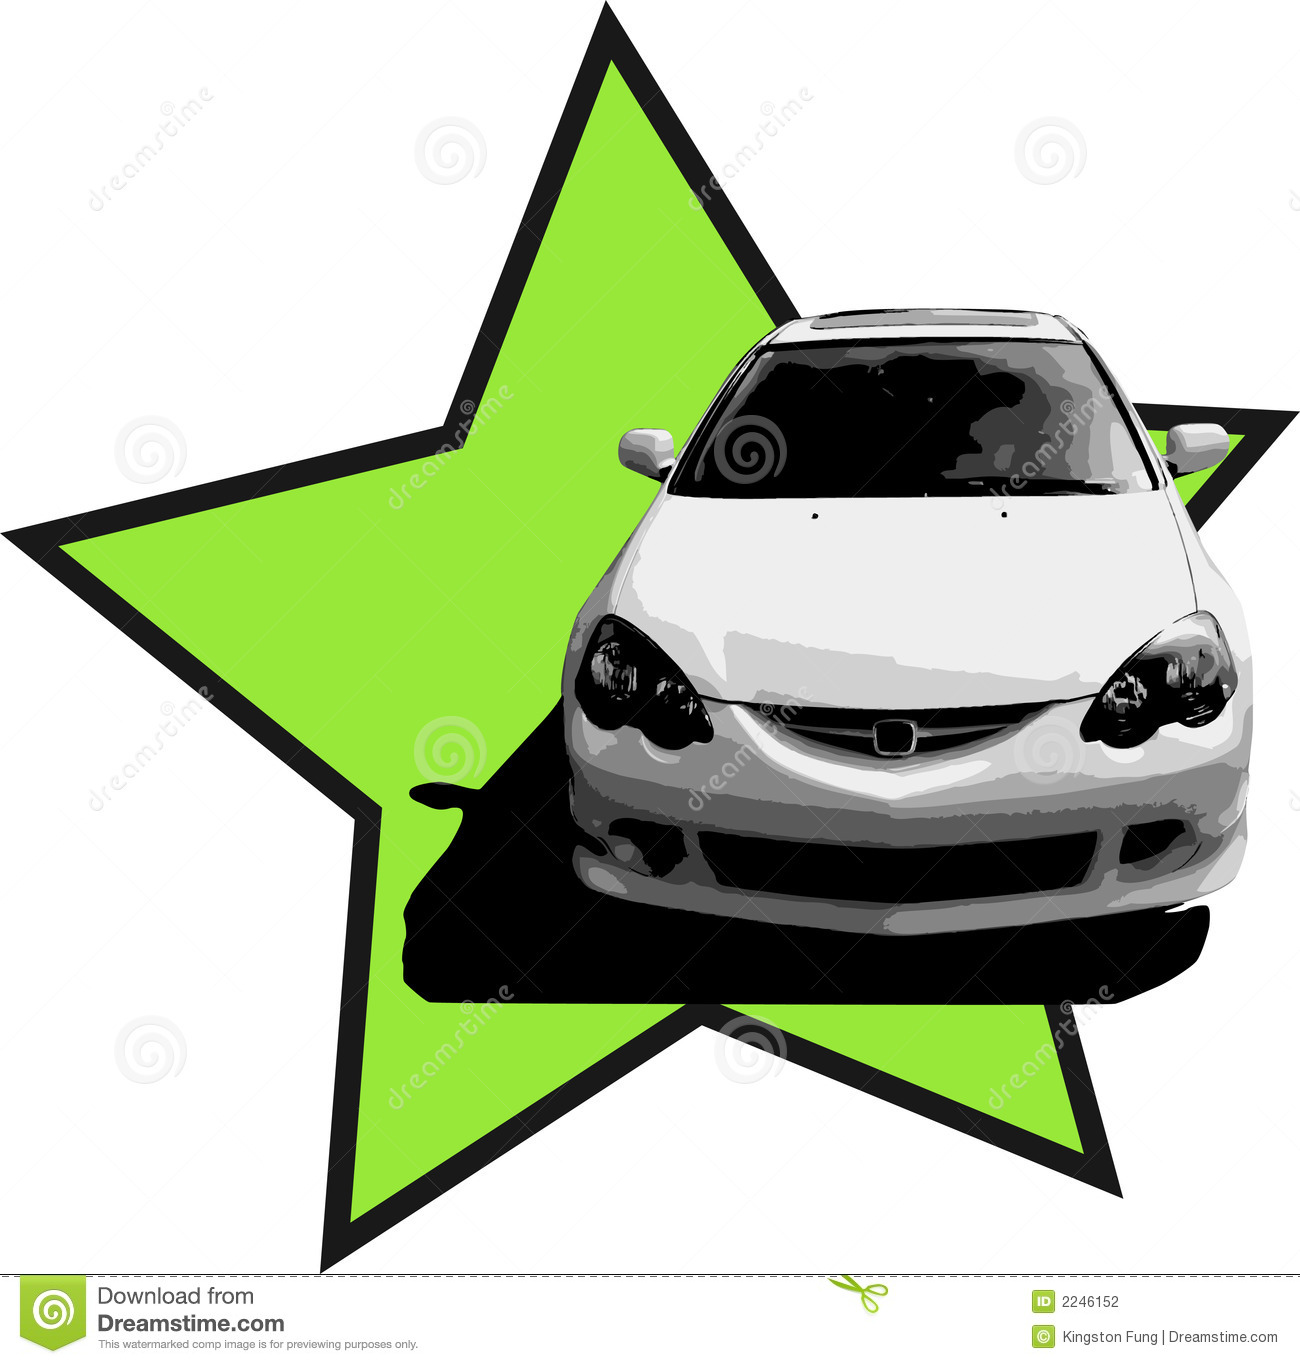 Acura RSX Illustration Stock Vector. Illustration Of White